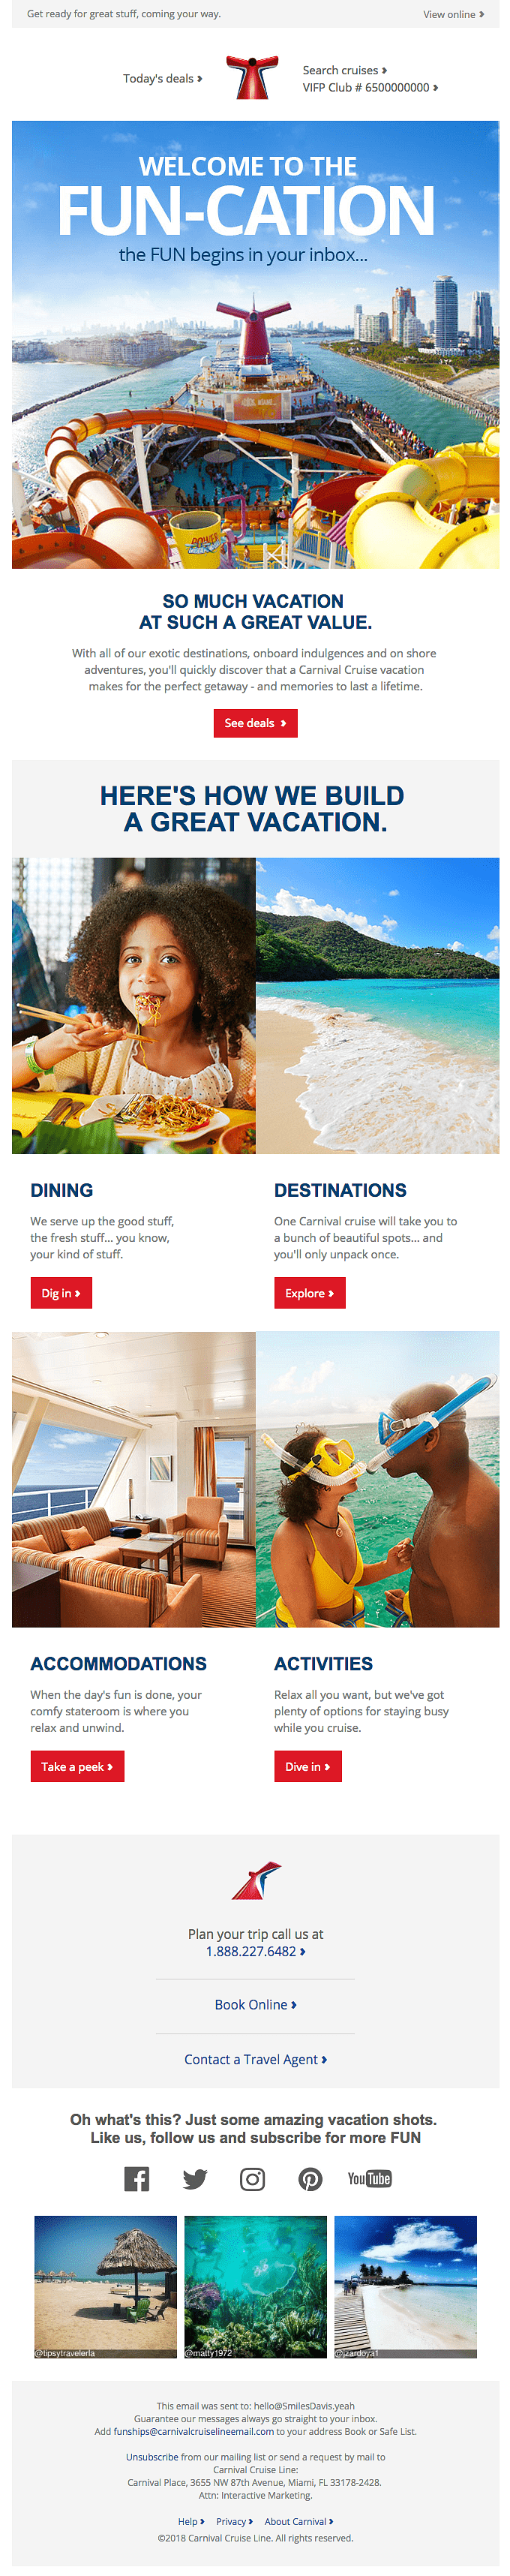 Email marketing for tourism - provide inspiration